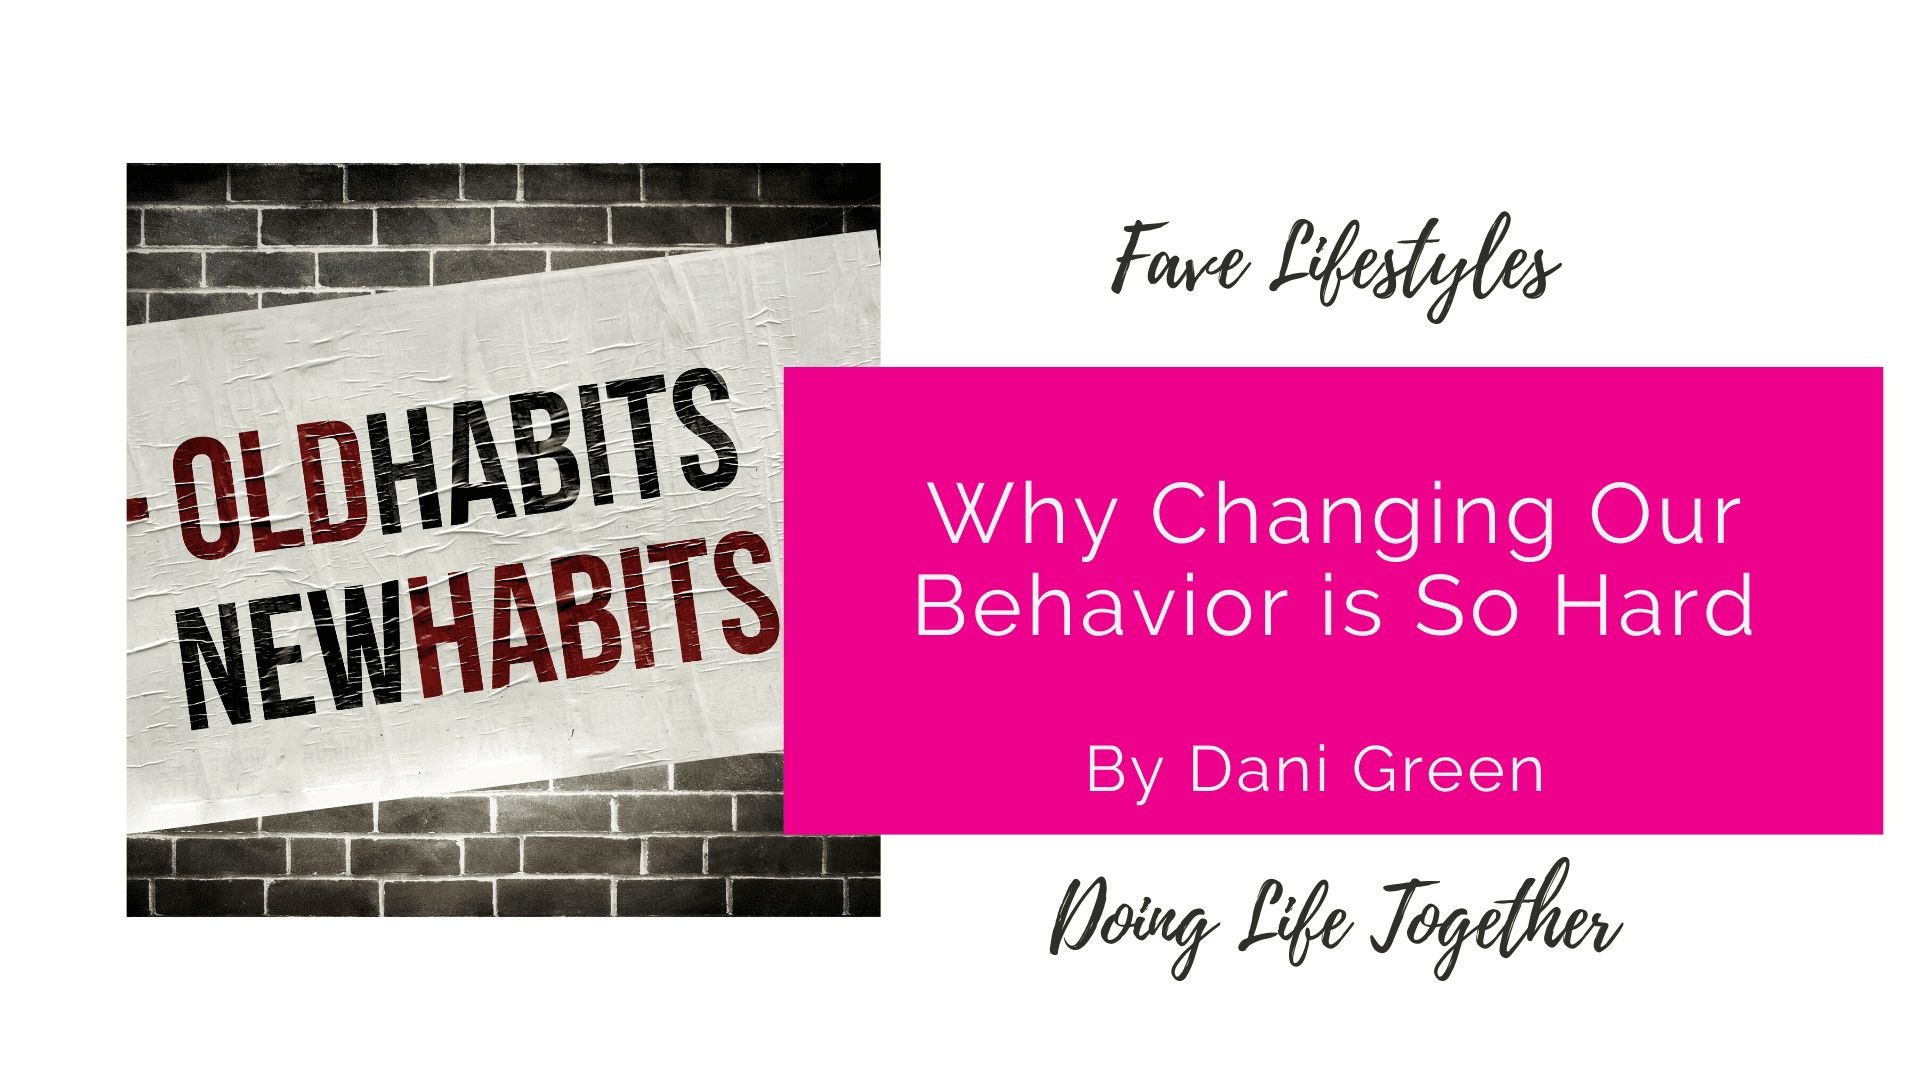 Why Changing Our Behavior Is So Hard